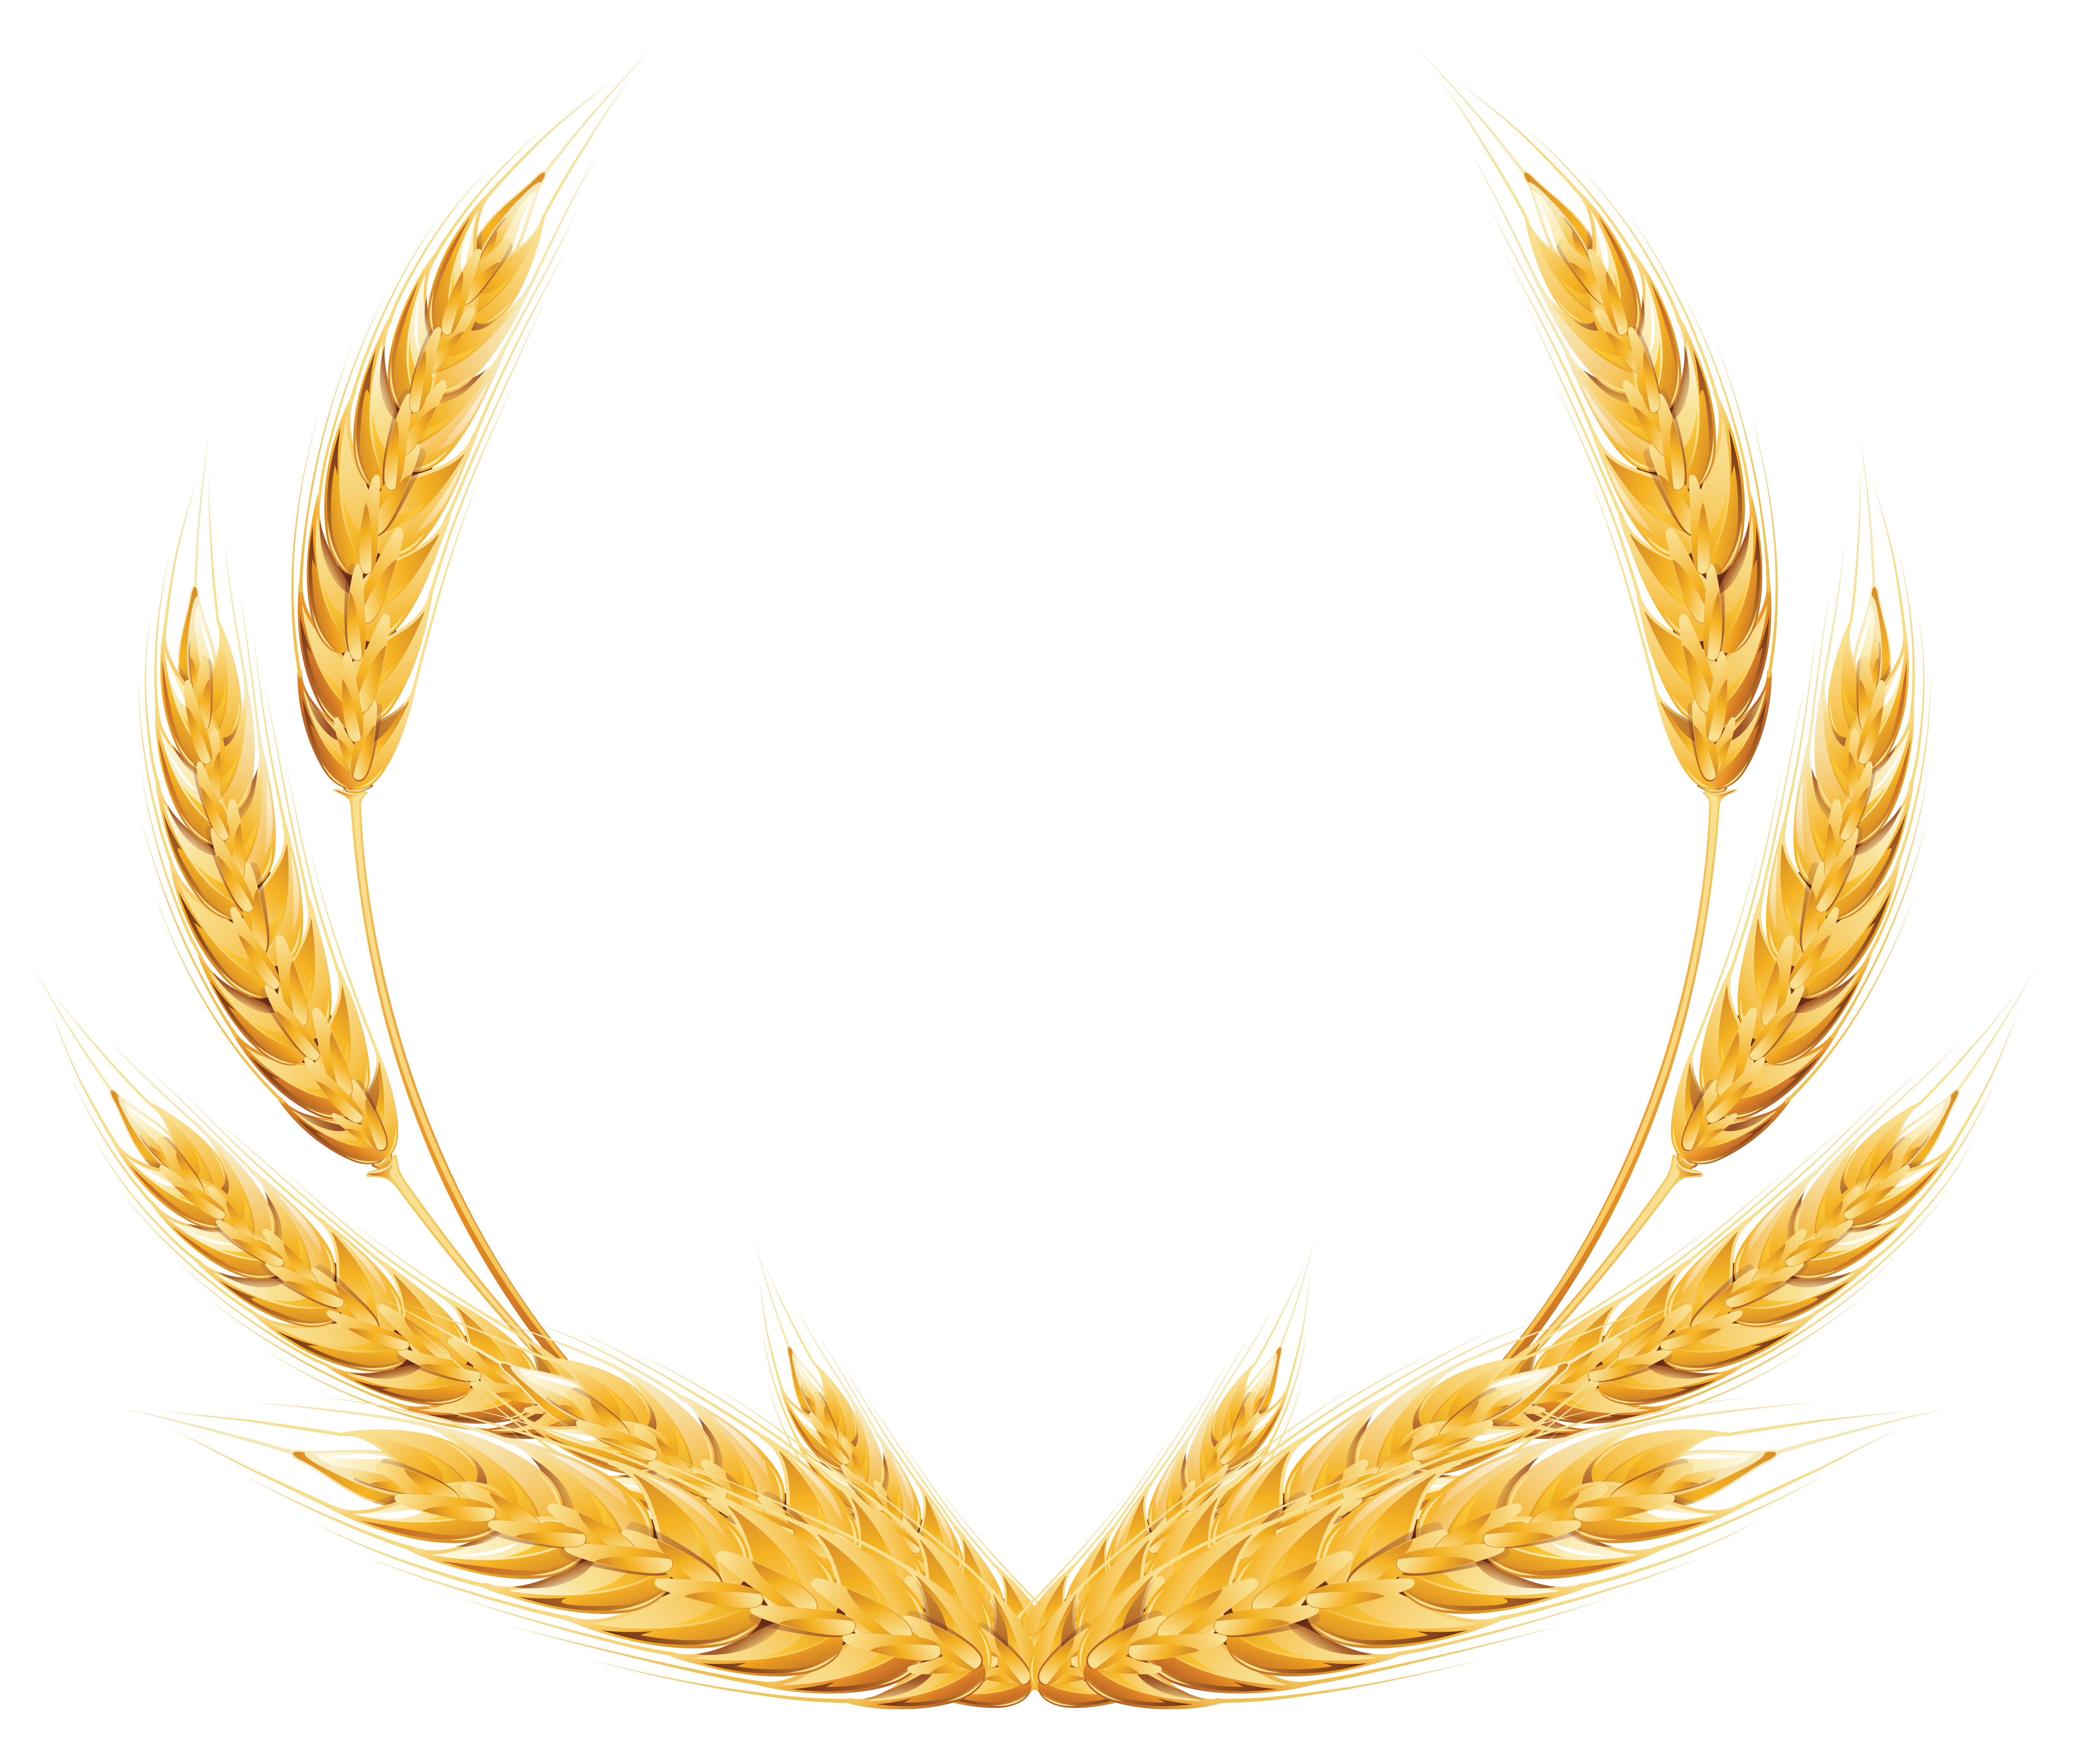 Wheat png. Images free download